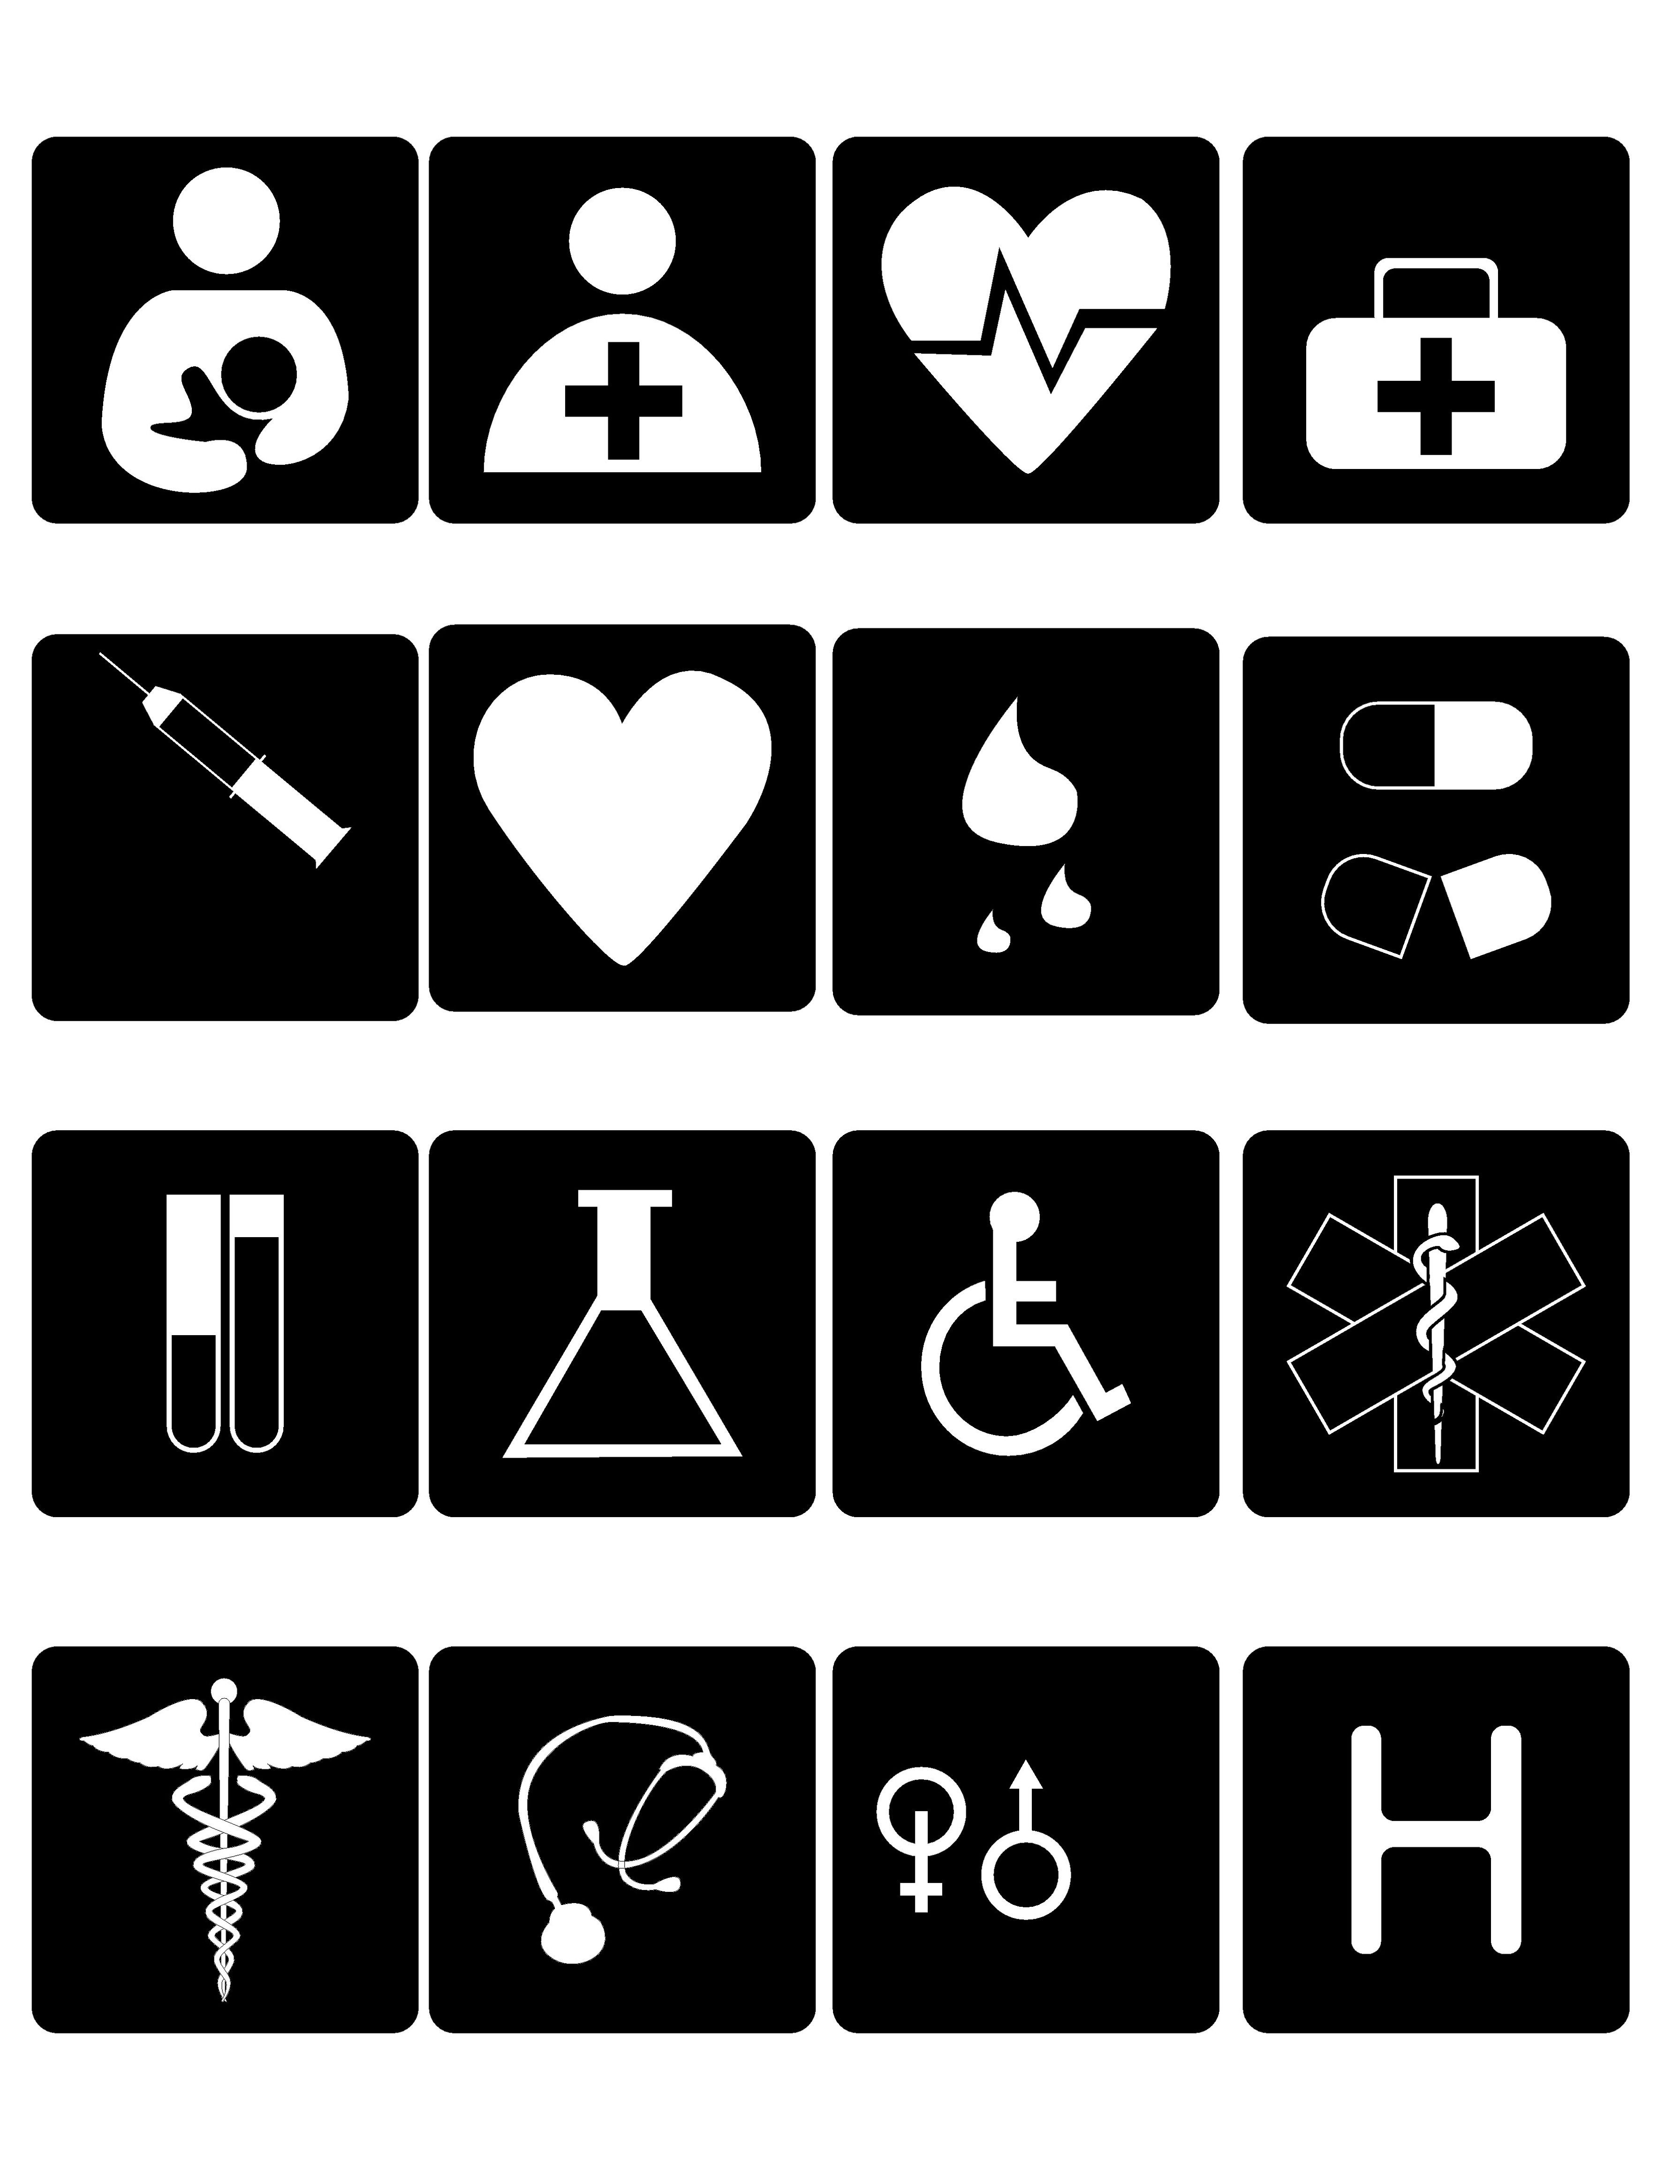 Symbols For 1st Aid Compassion Feeling Listening And Sharing Day